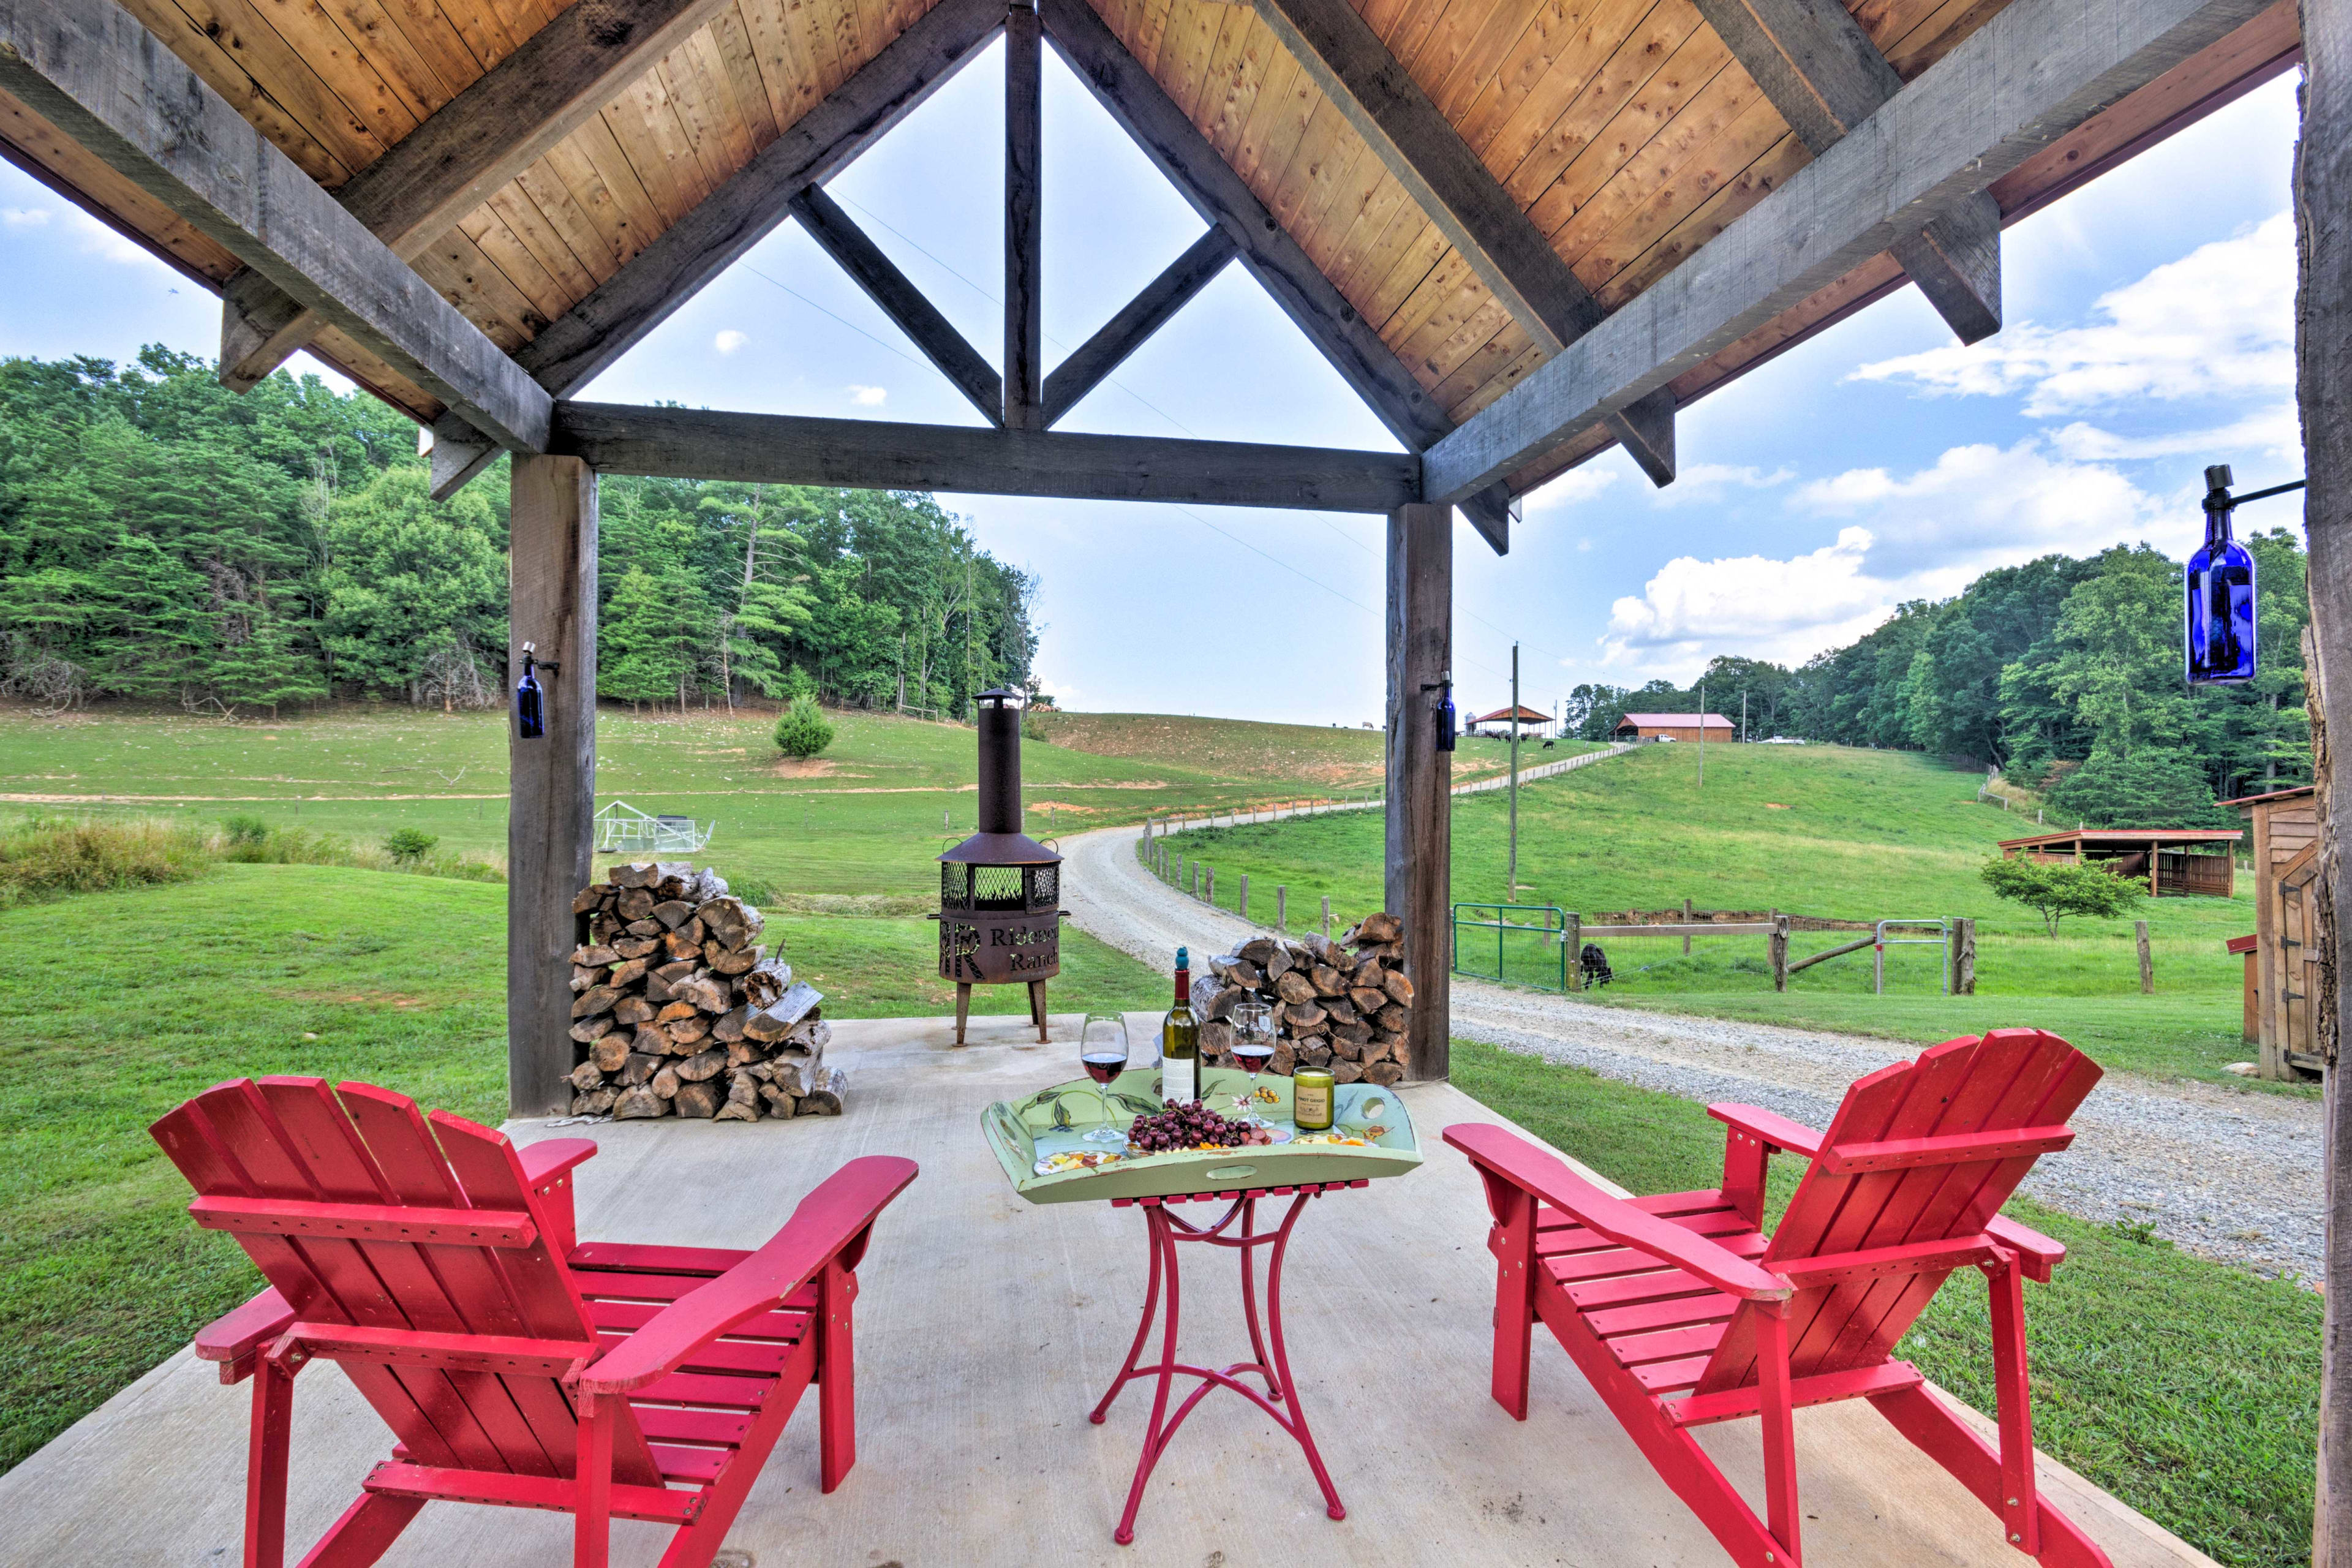 Pop open a bottle of wine & celebrate your North Carolina holiday!